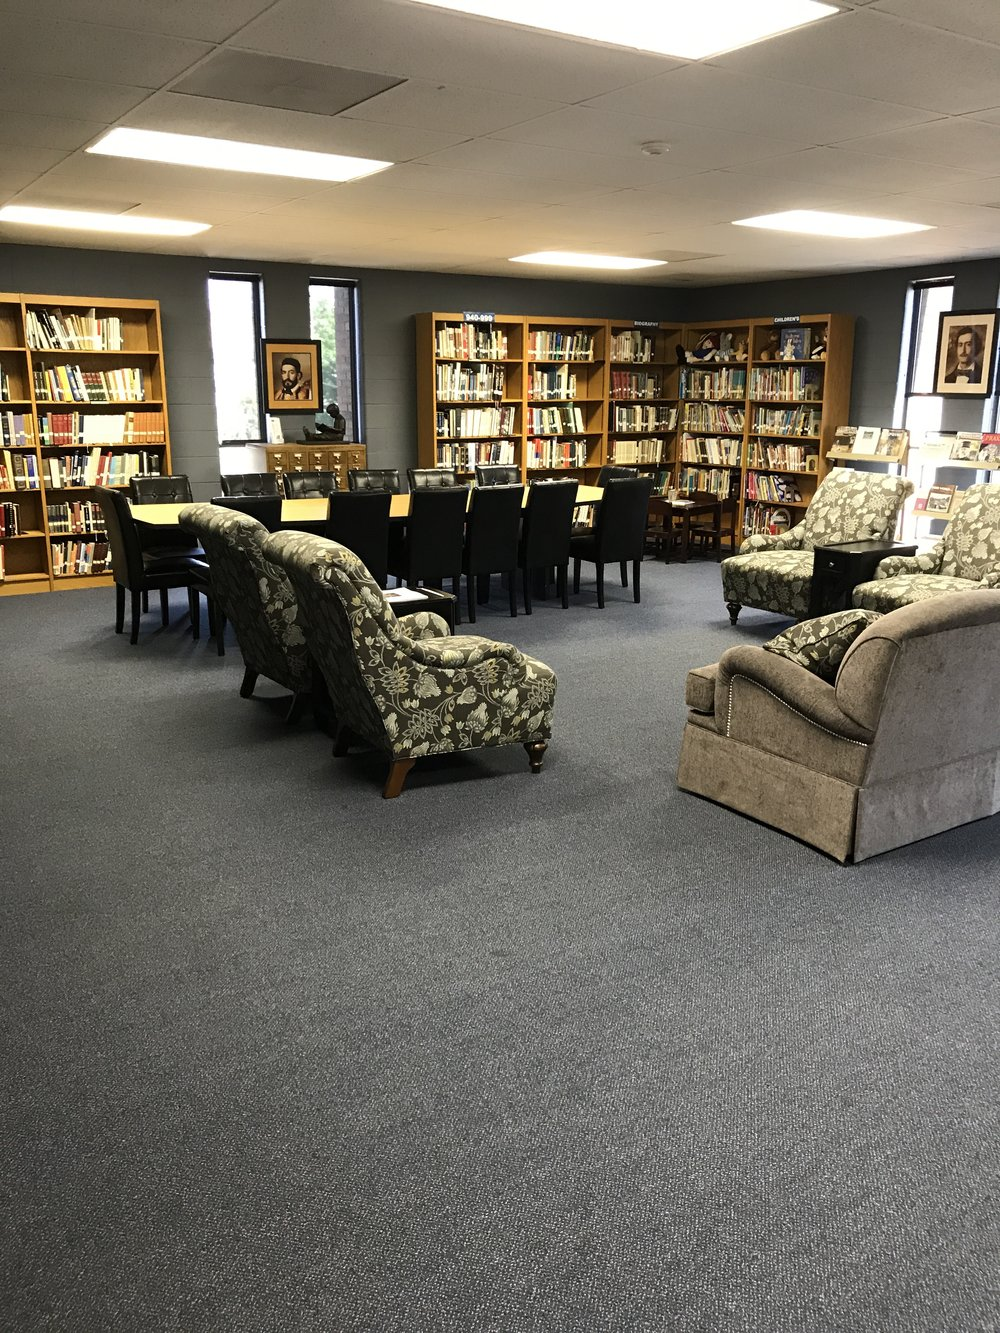 Board meeting, conference, planning committee - our Library is the perfect room.